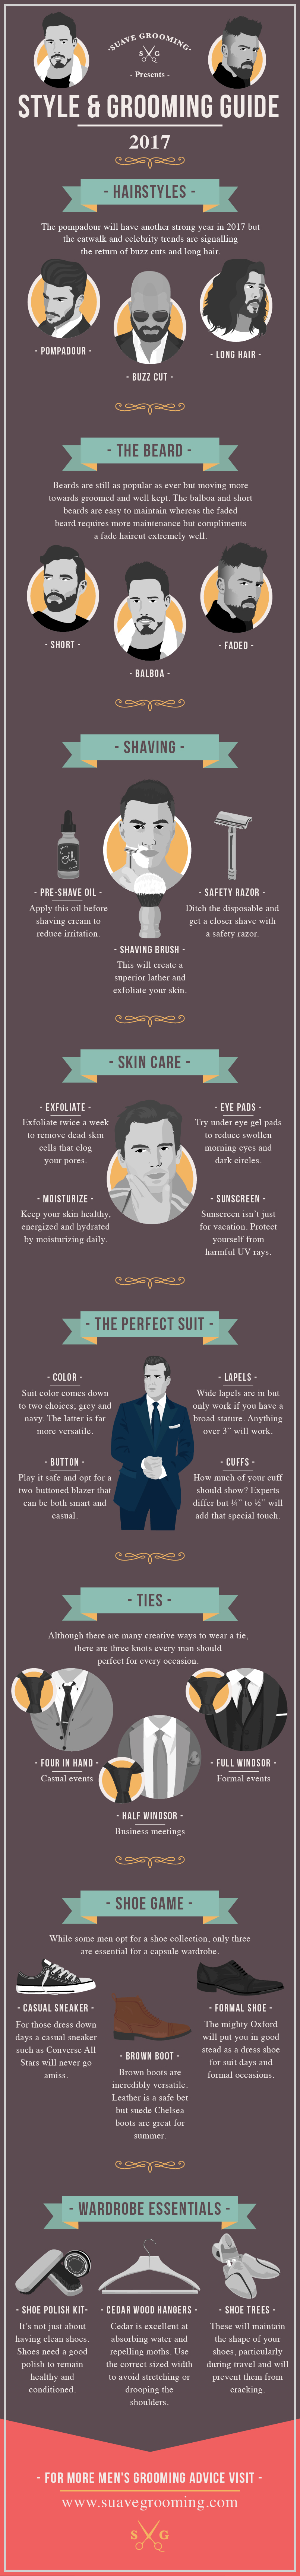 Style & Grooming Guide